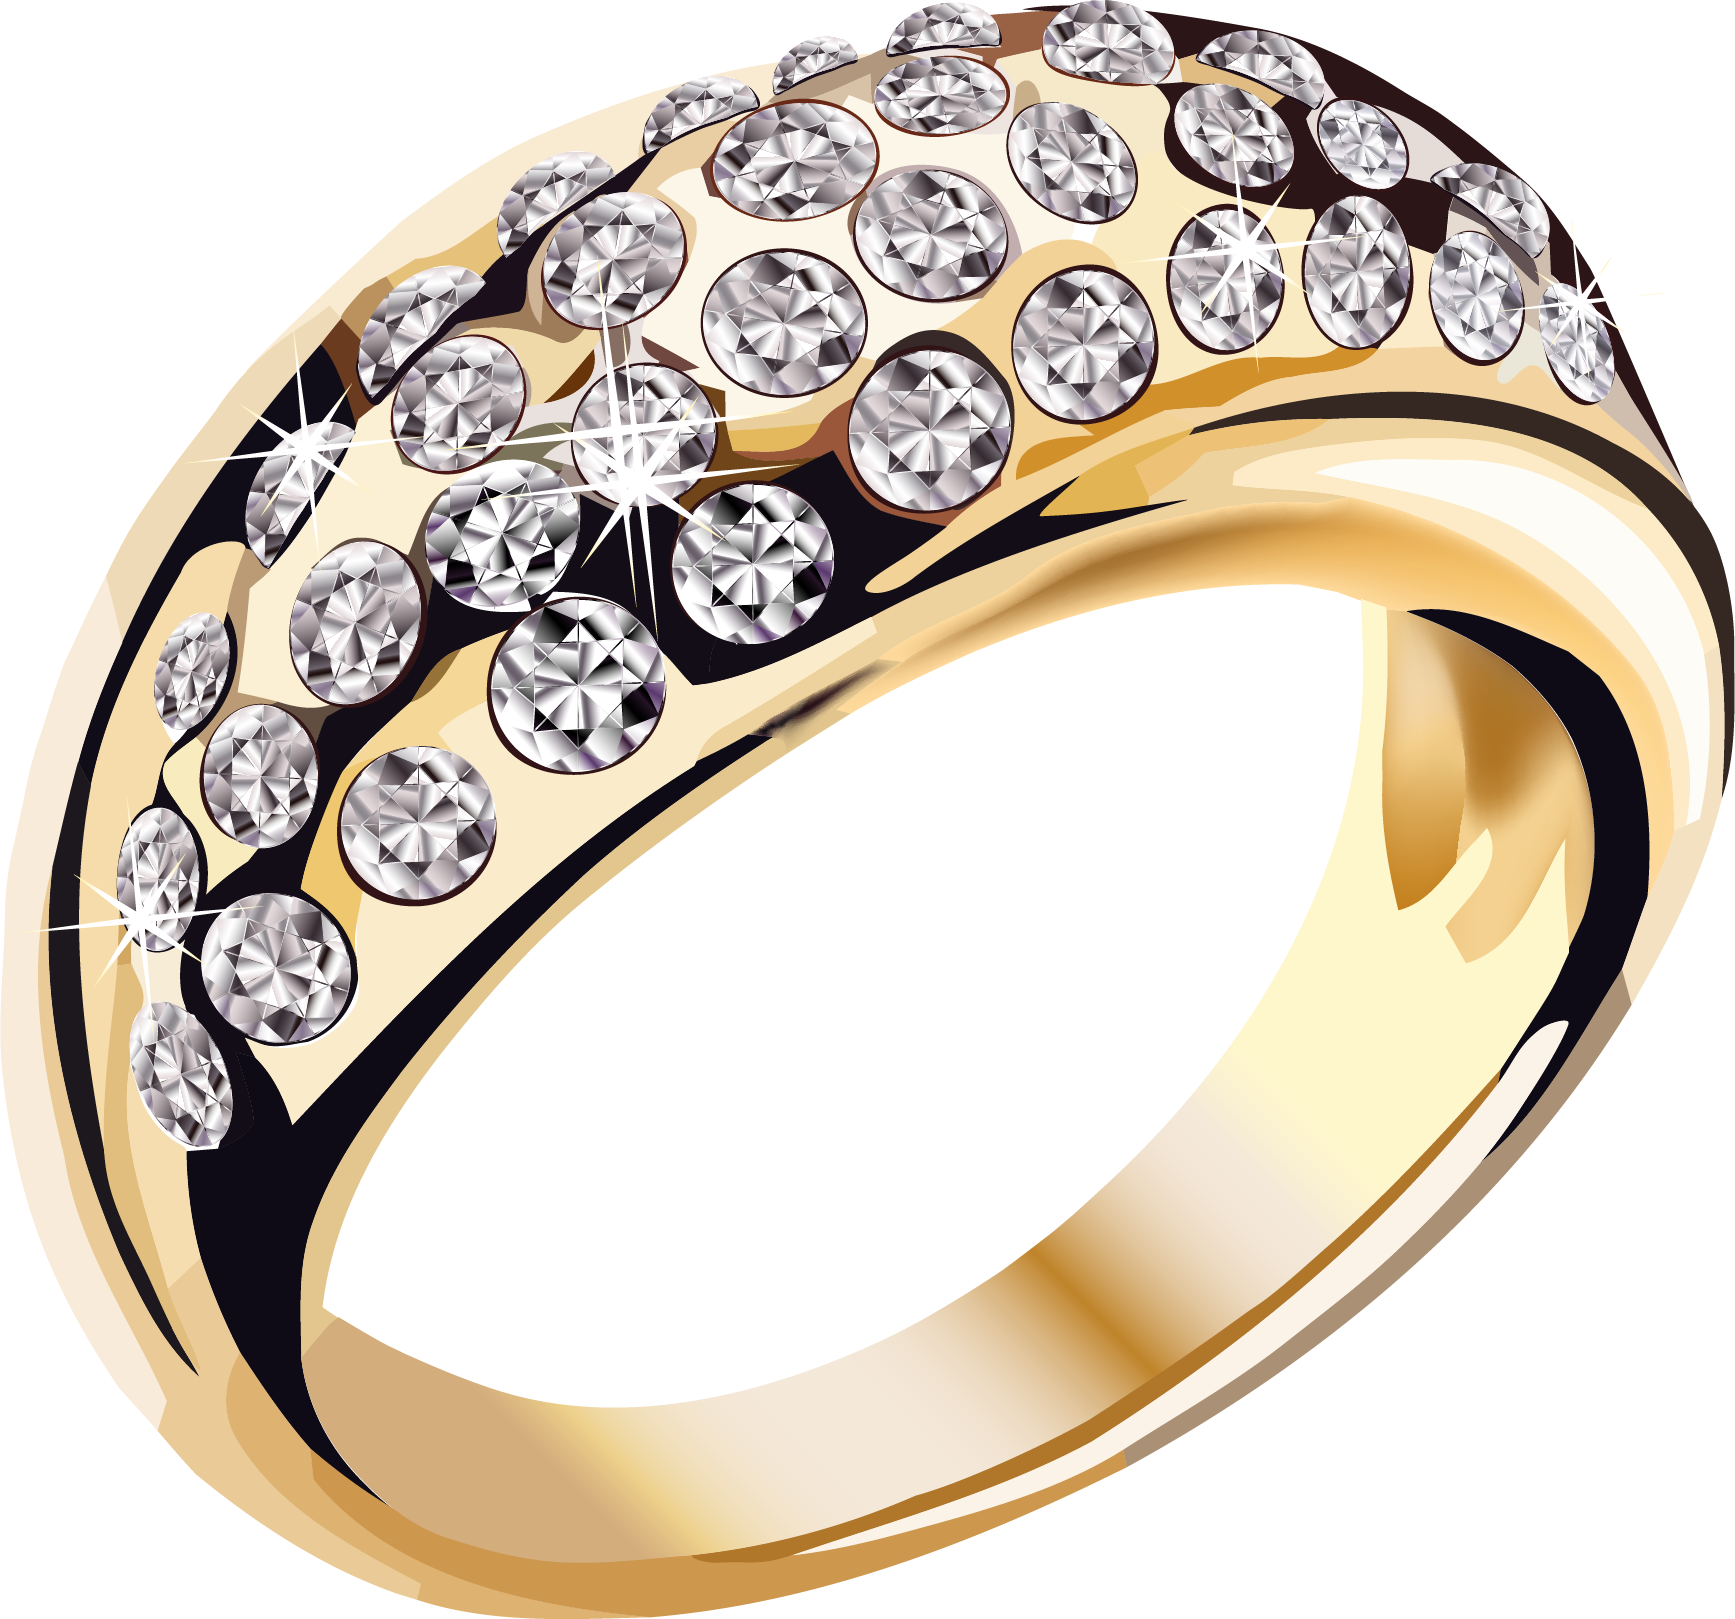 Jewelry clipart wedding ring. This best represents my